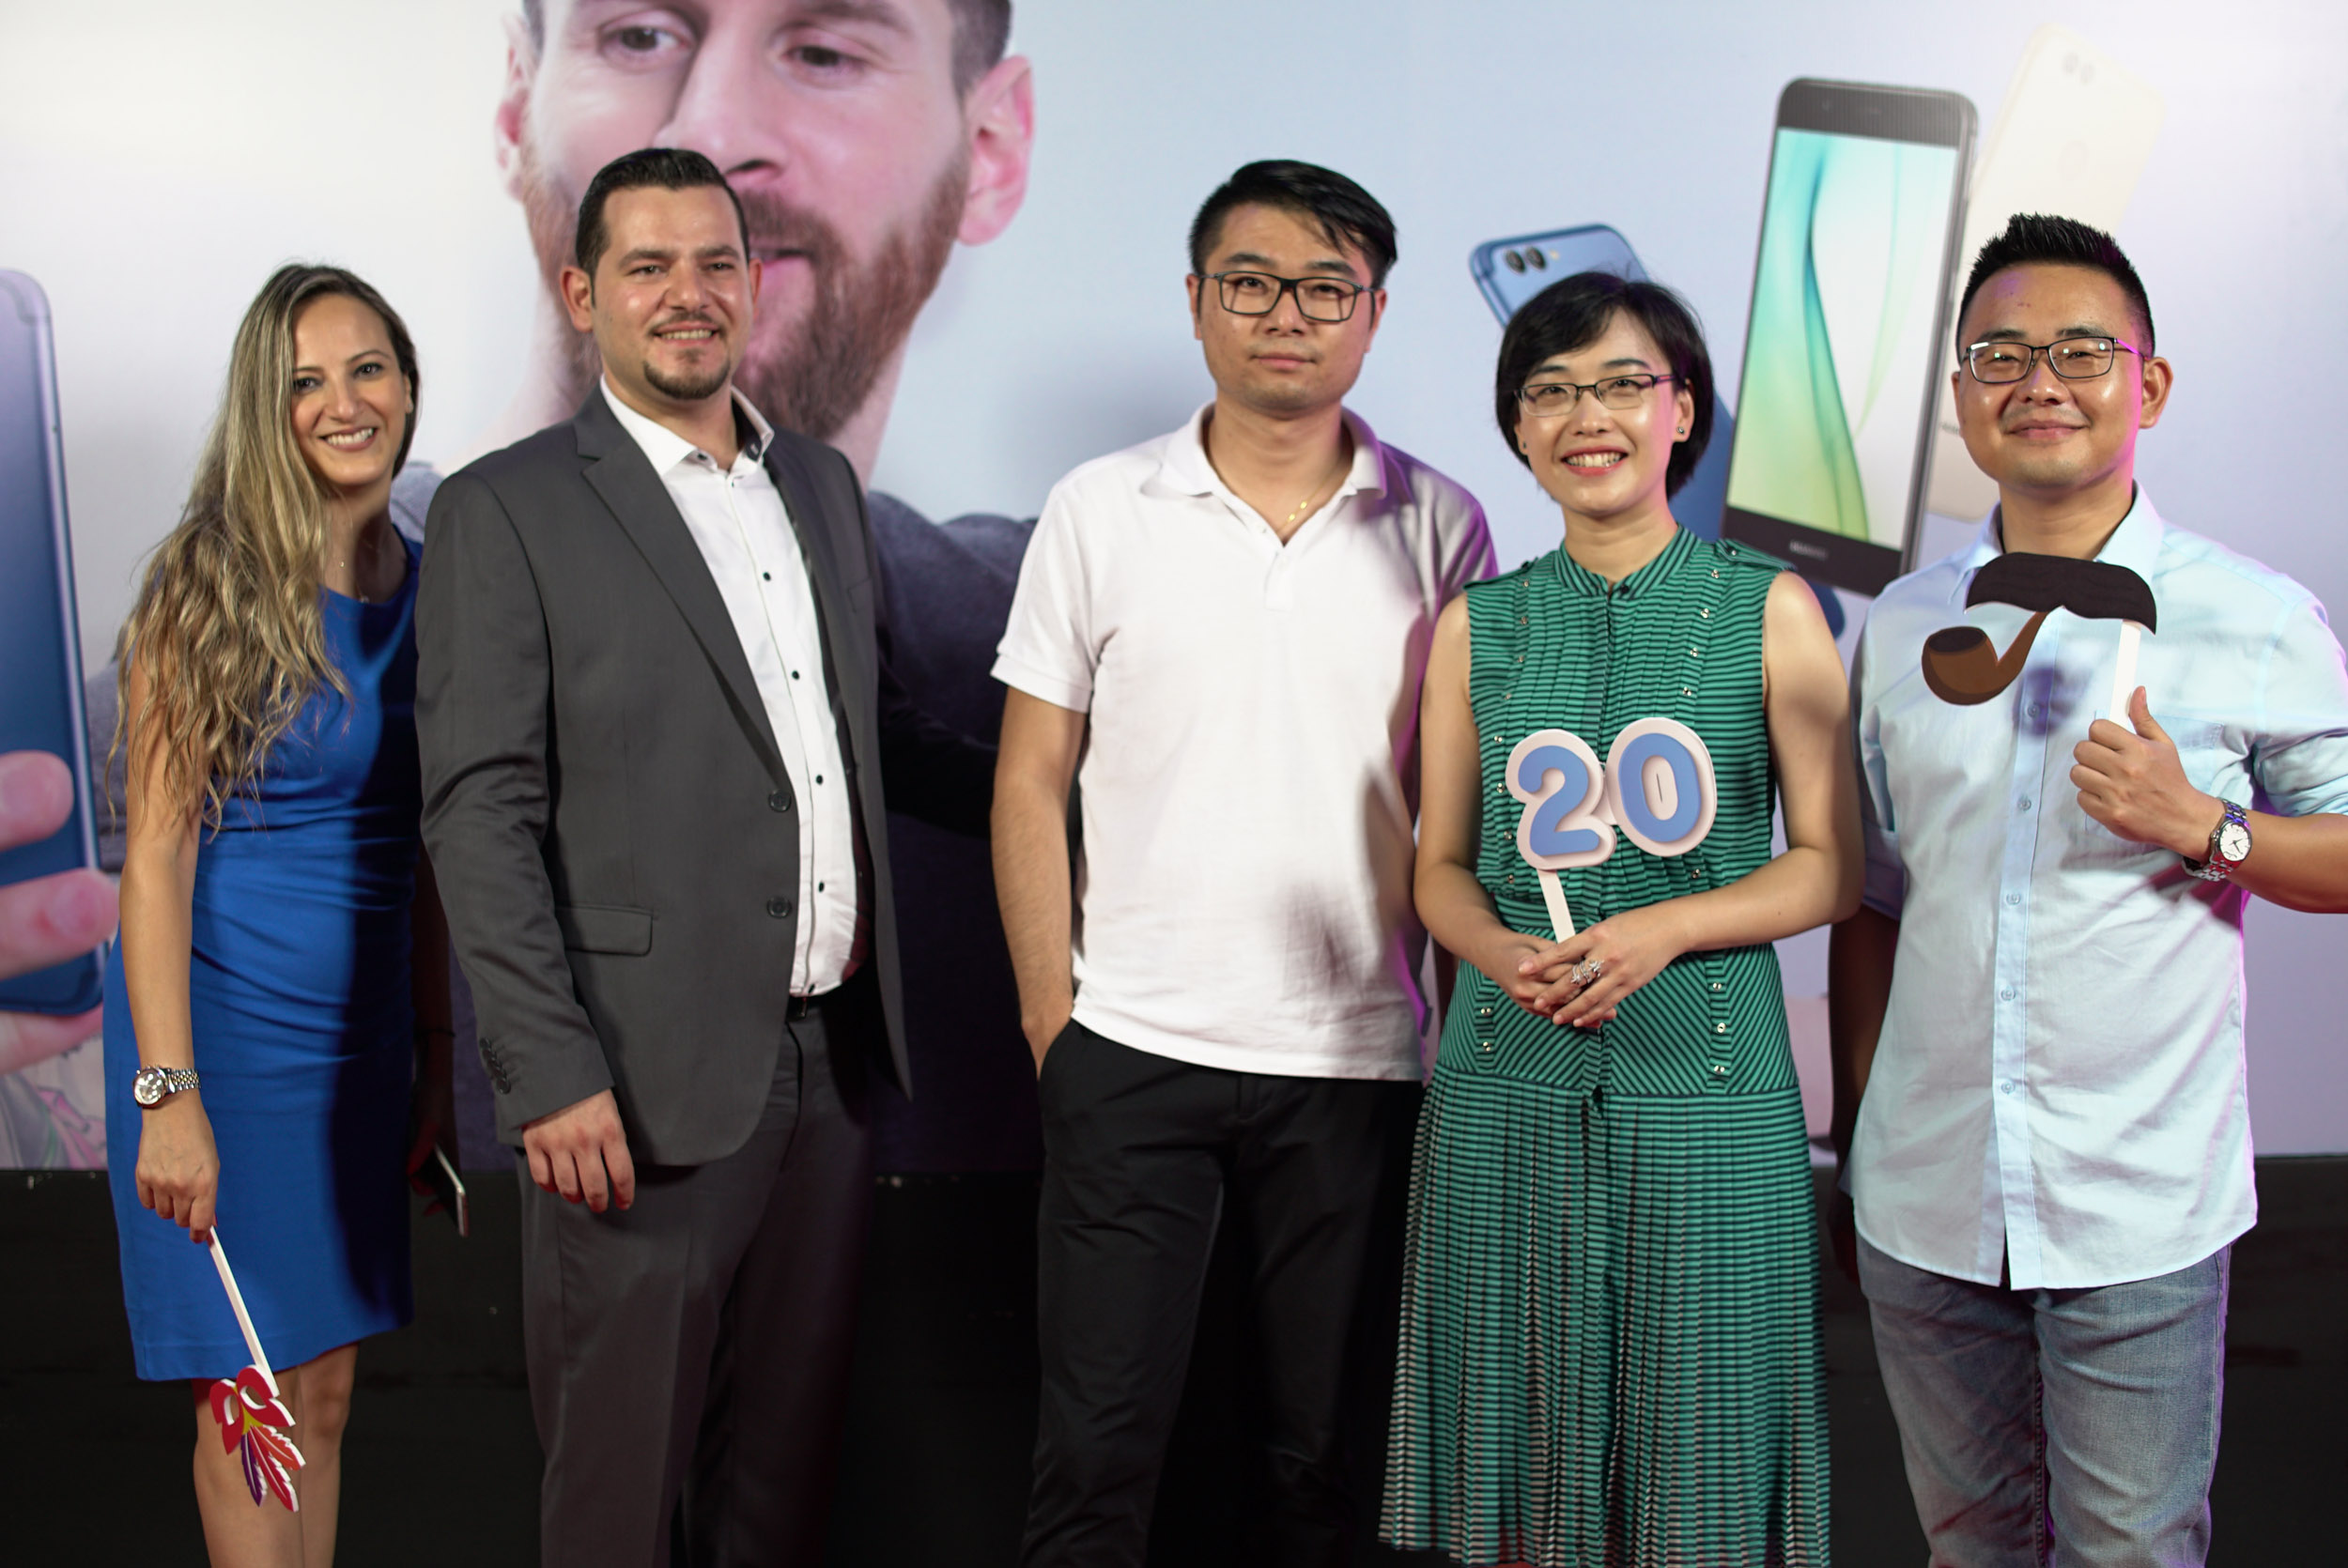 Danielle Sayes, Youssef Zein, Andy Lihag, Penny Diao and Allen Jinlong